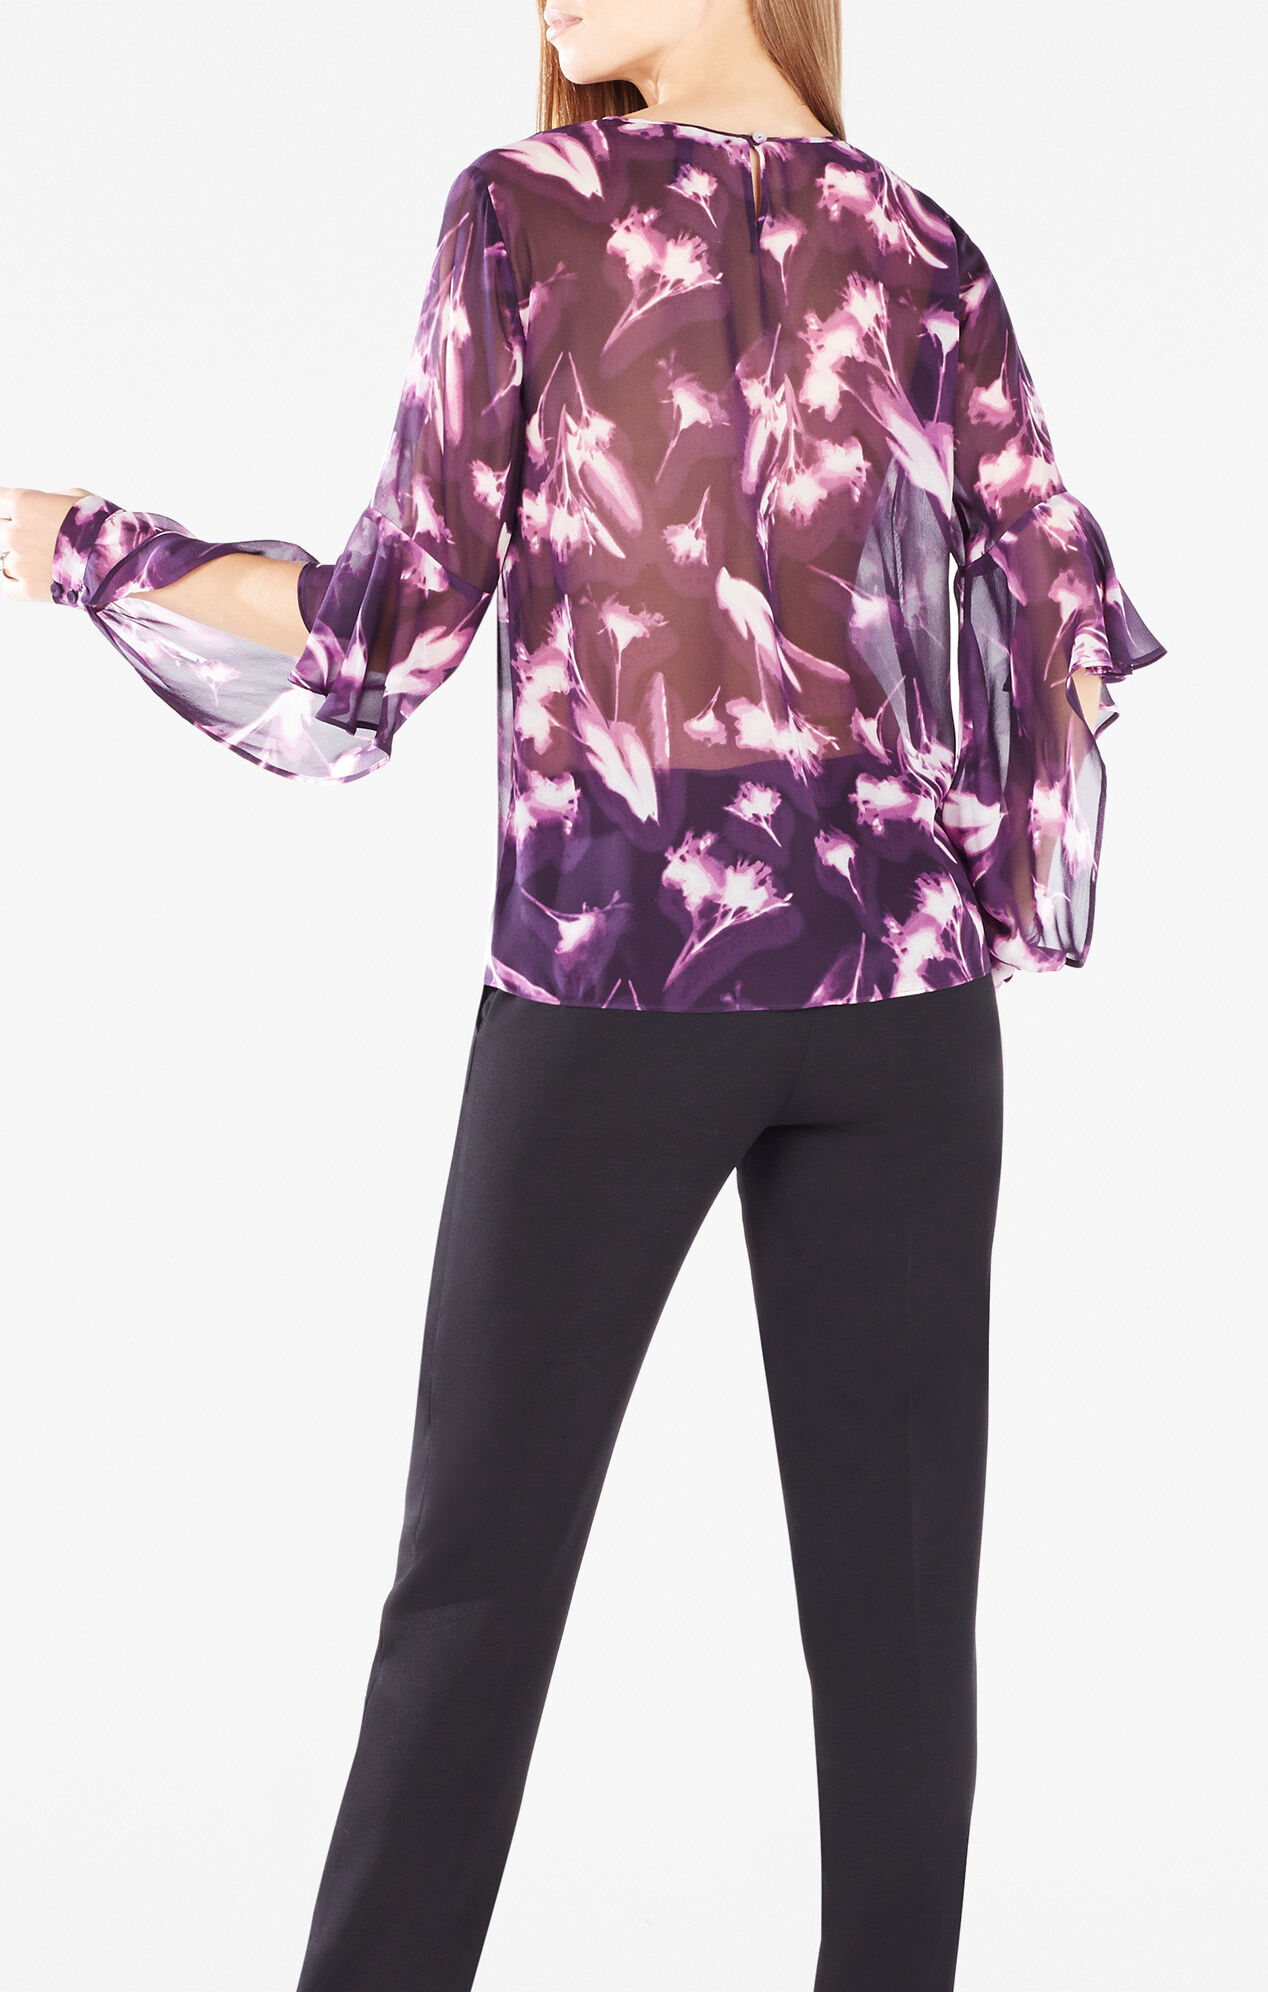 Xray Flower Prints Geremi X Ray Floral Print Top